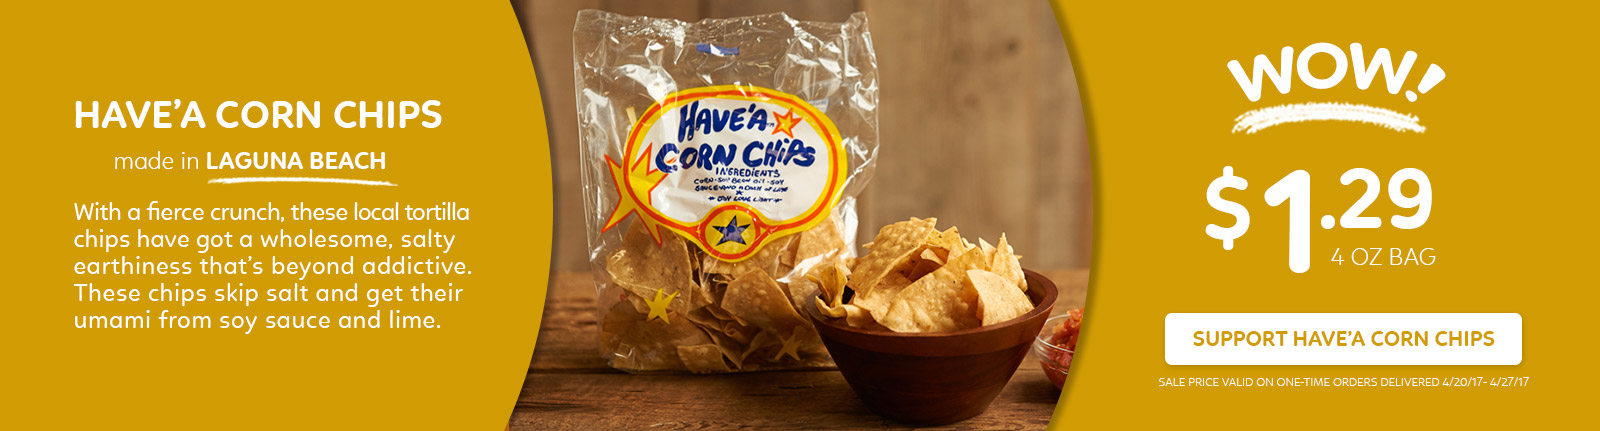 WOW! Have a Corn Chips $1.29